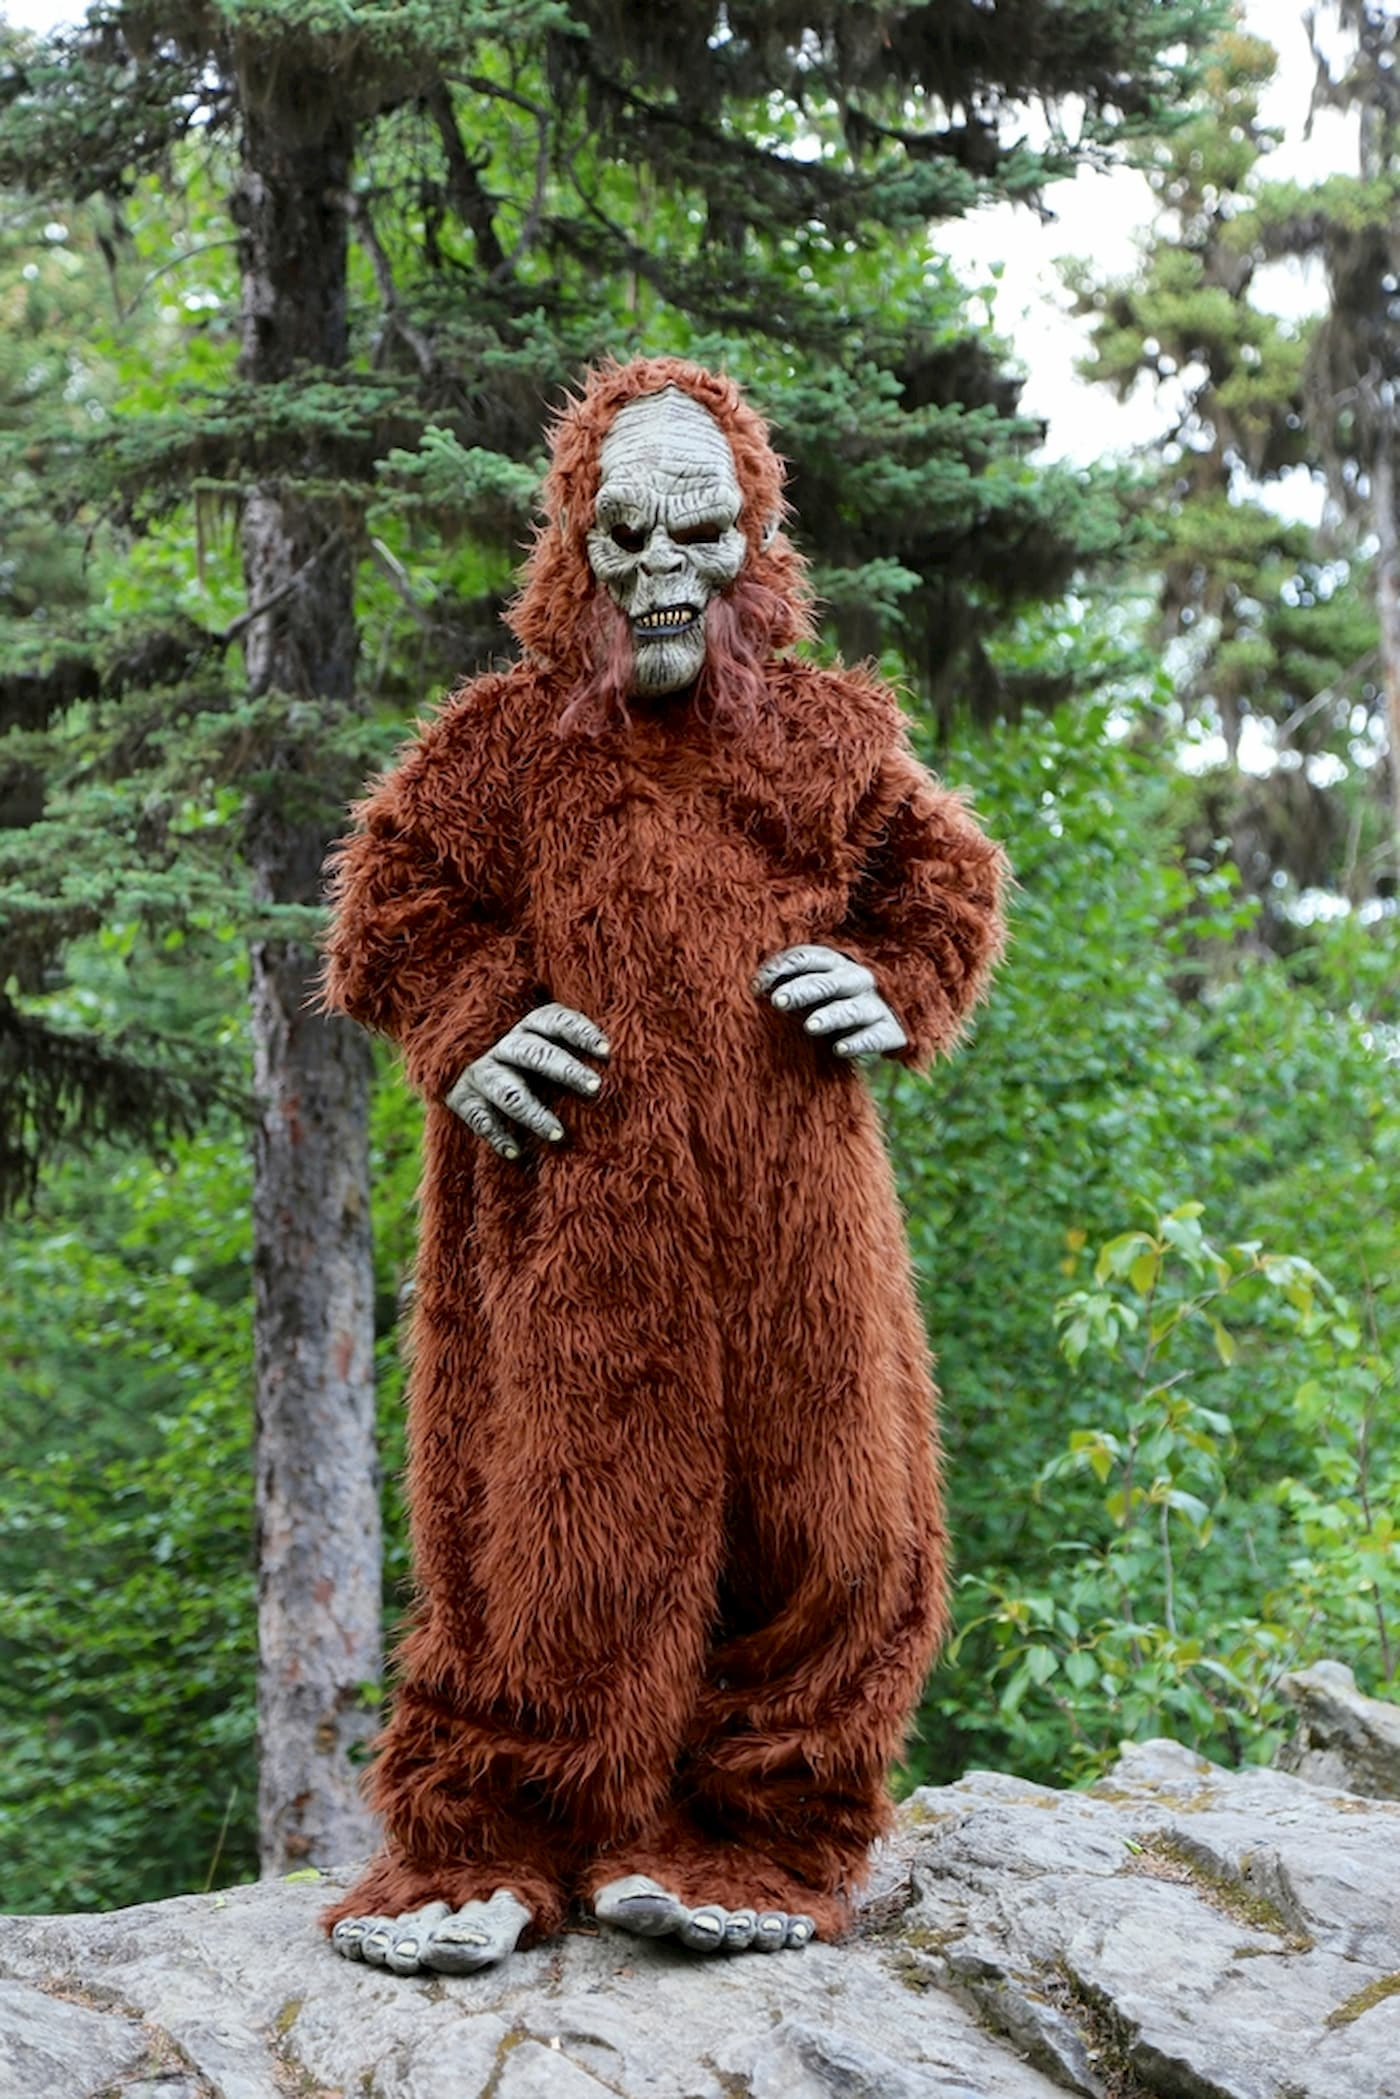 Person wearing sasquatch costume in the forest.